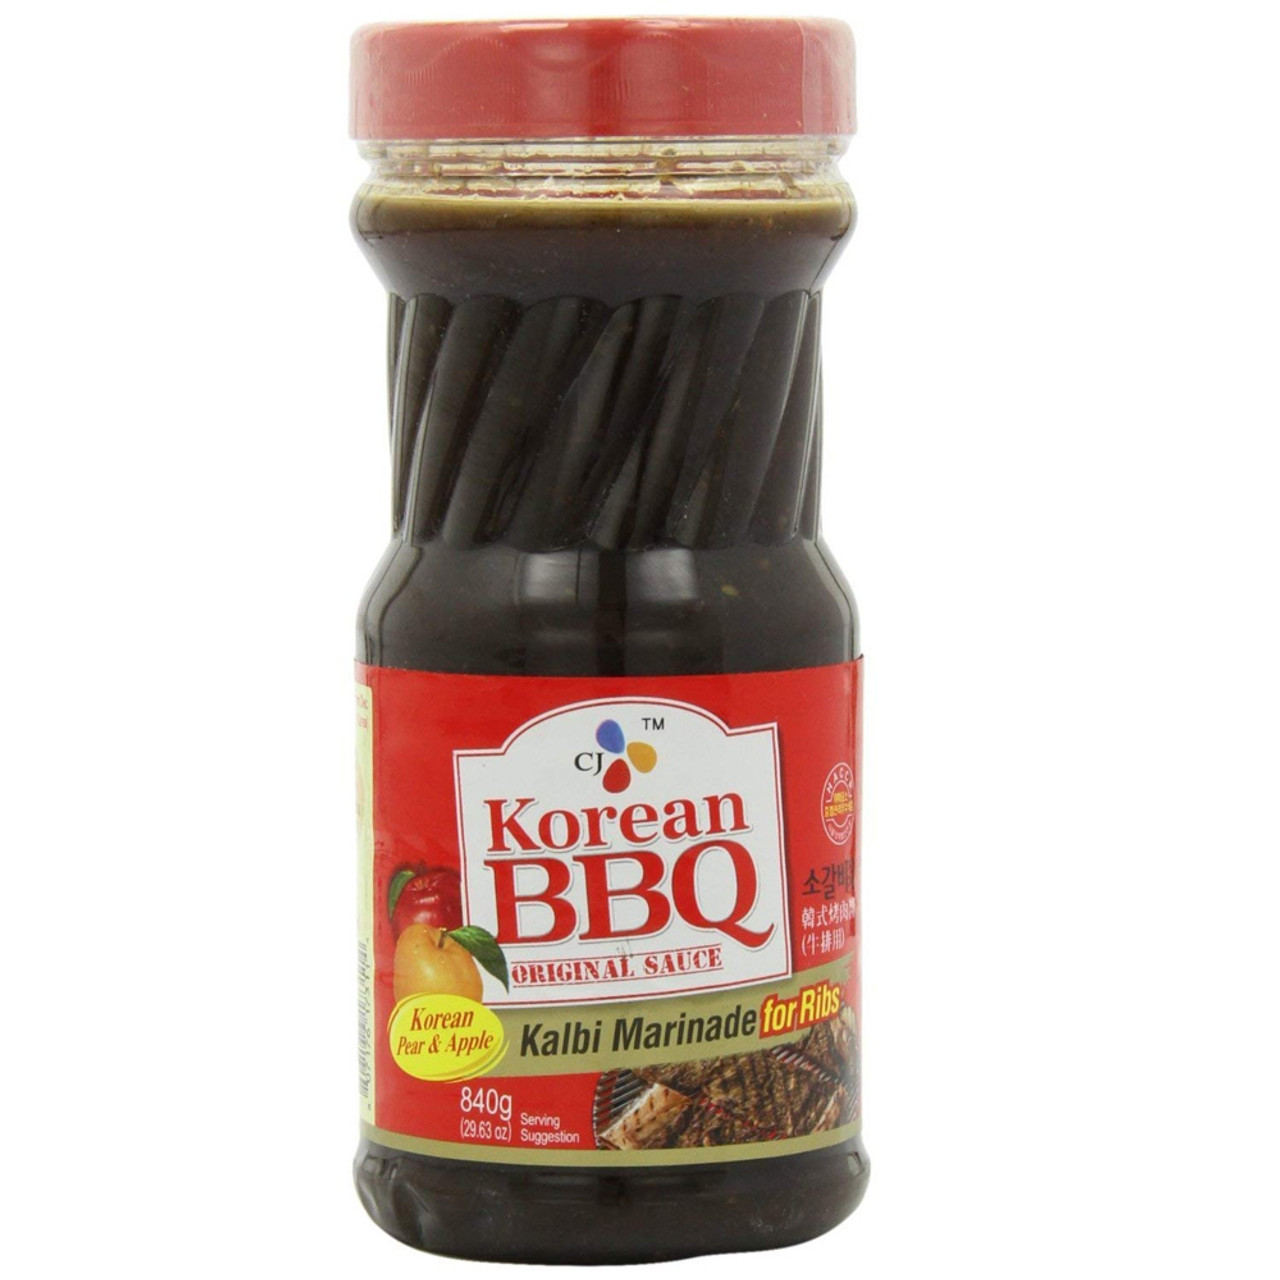 Cj Korean Bbq Kalbi Marinade Sauce For Ribs 29 63oz Wynmarket Com